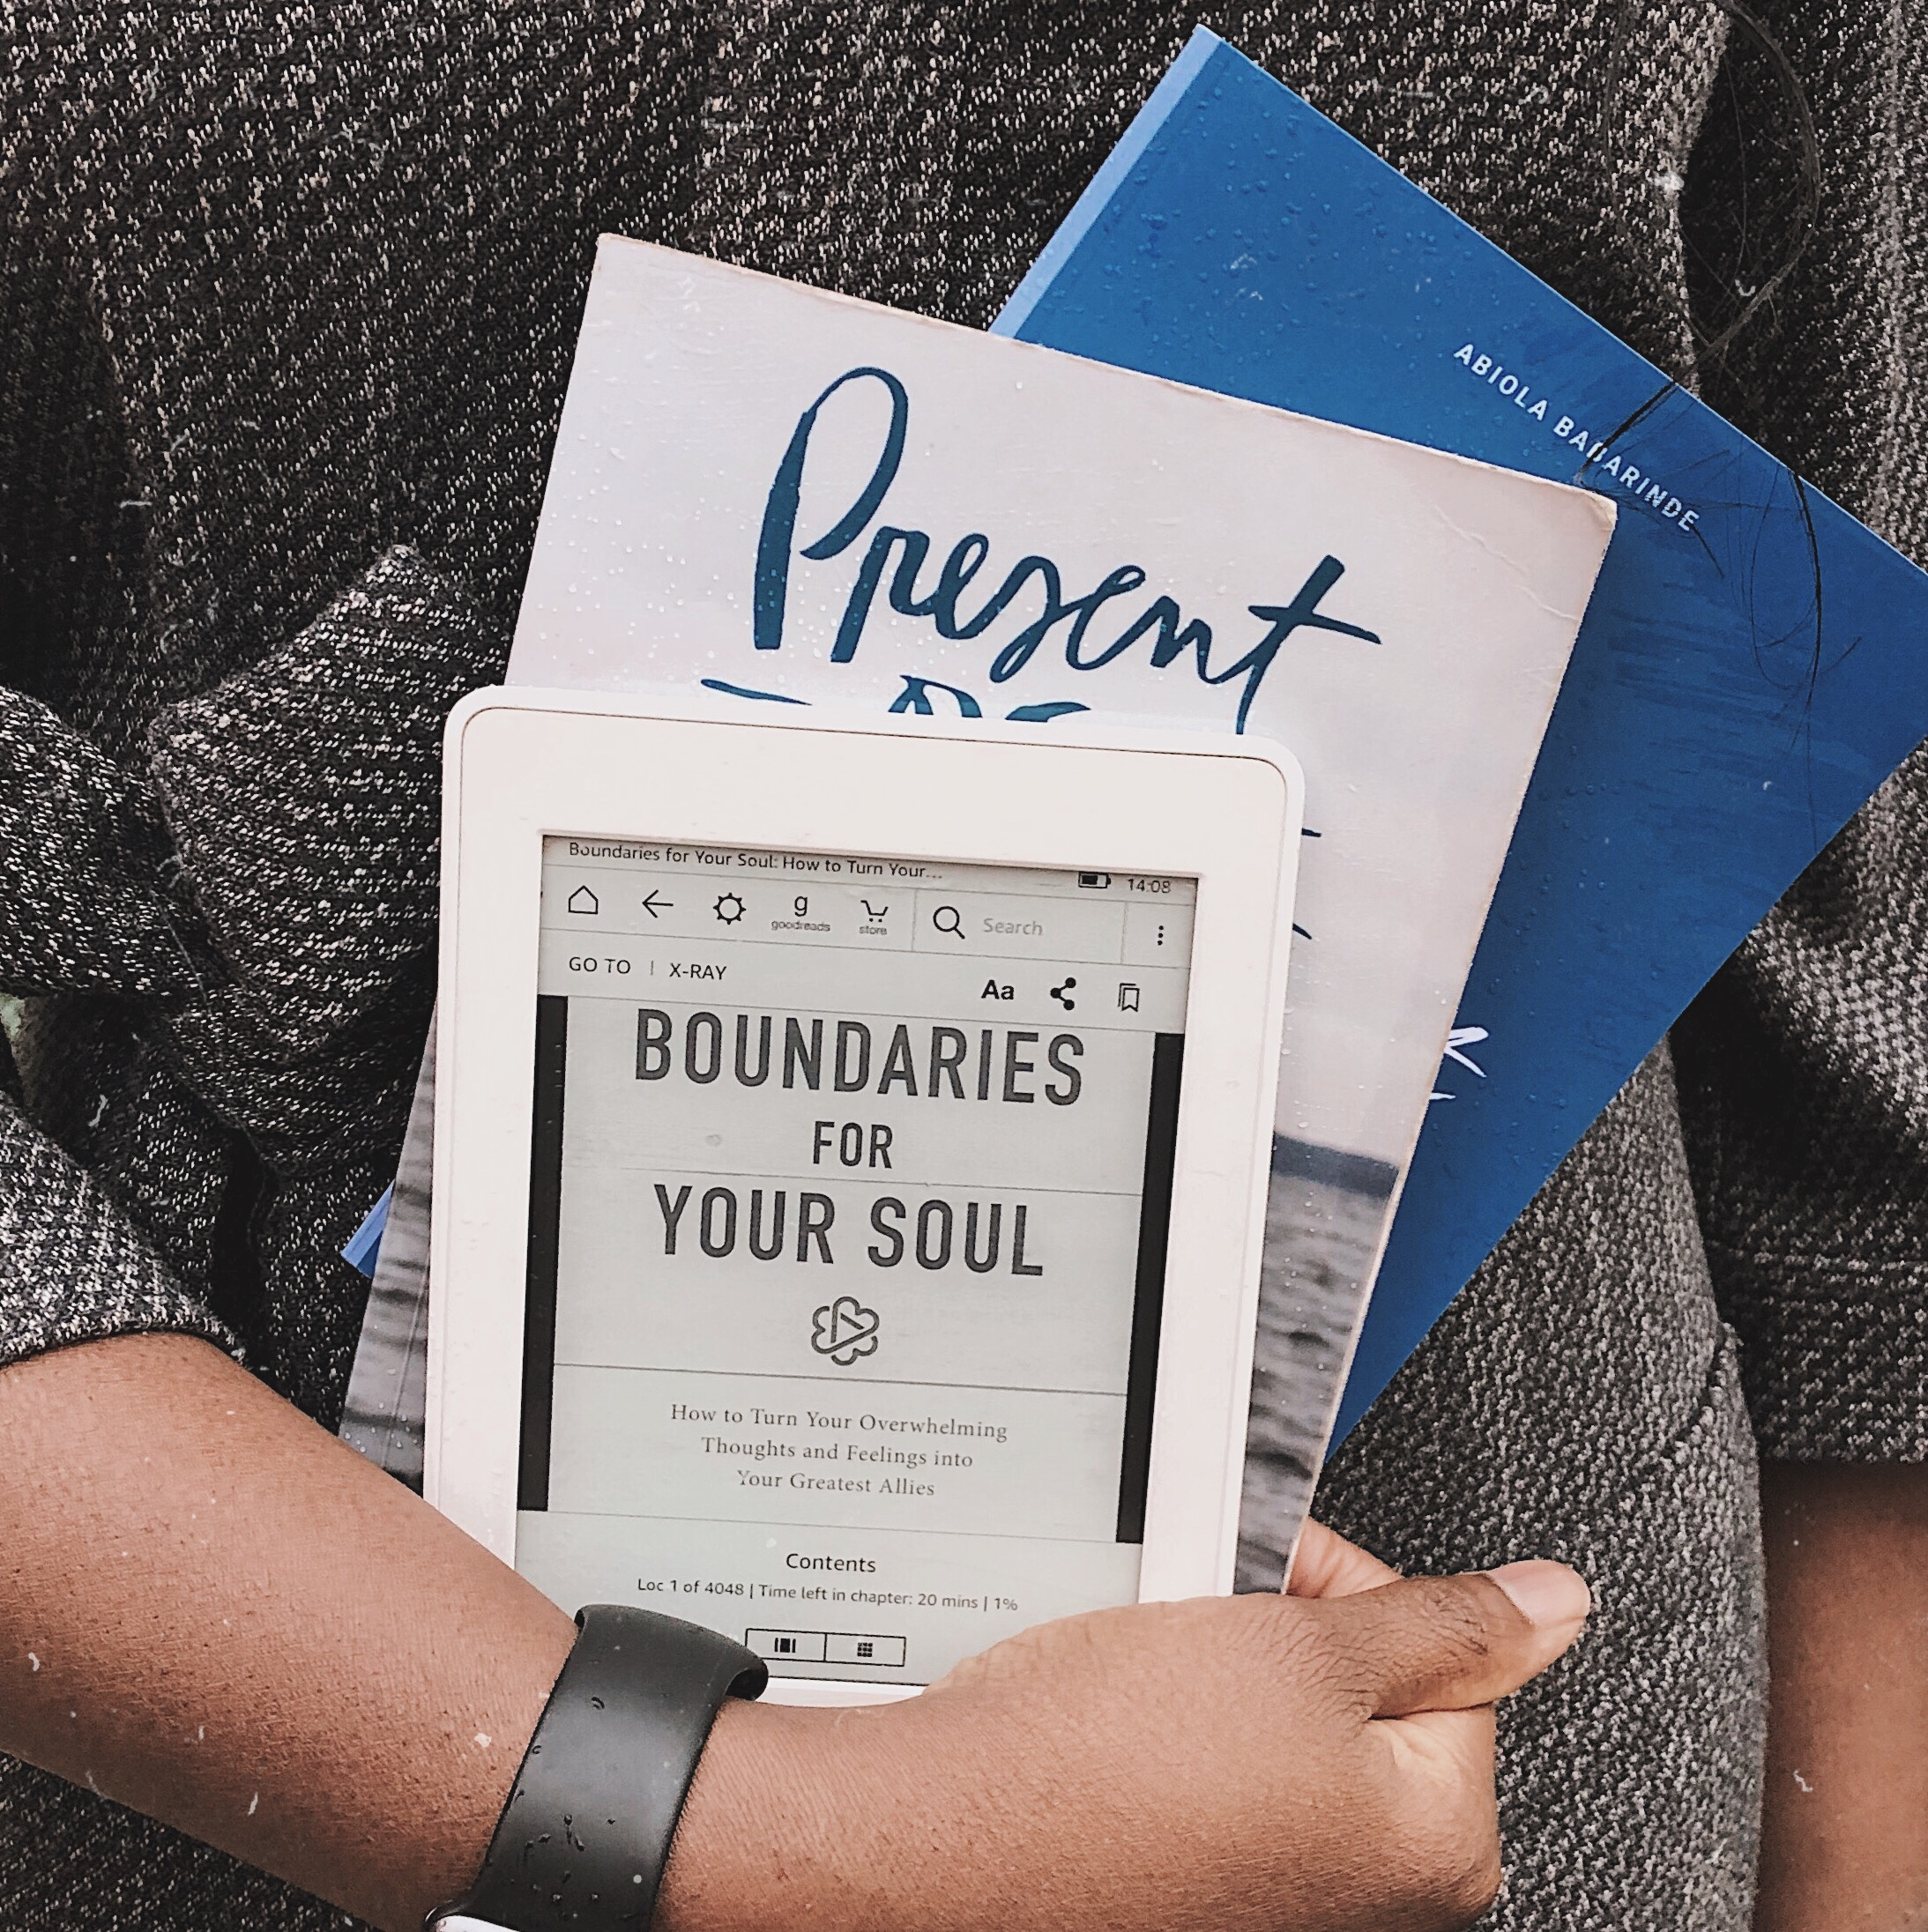 Boundaries for Your Soul, Present Over Perfect by Shauna Neiquist, Take What You Need by Abiola Babarinde